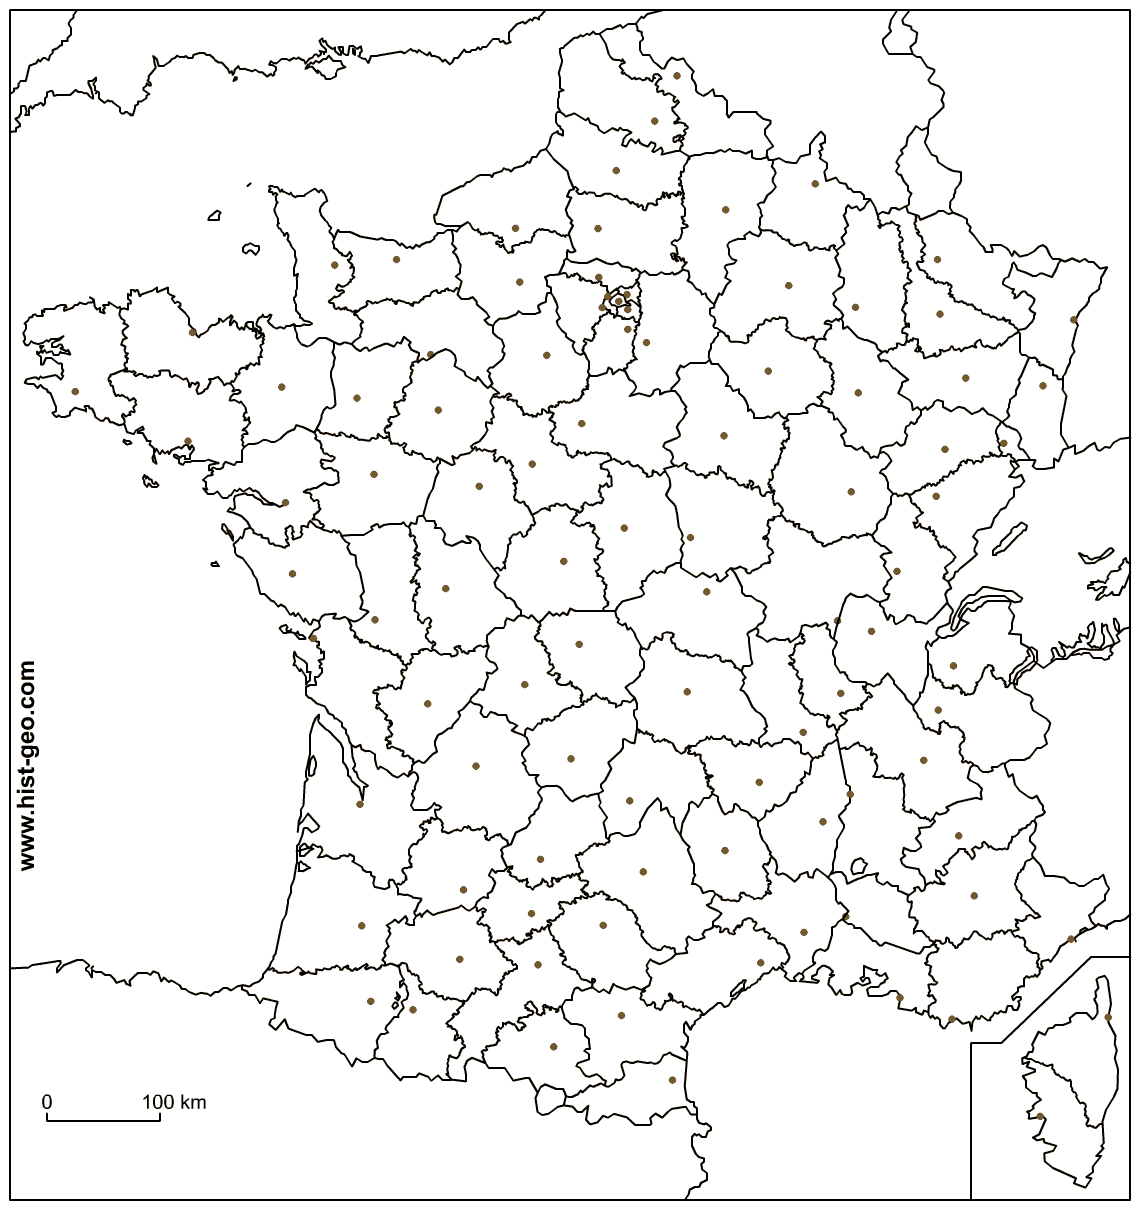 Outline Map Of France With French Departments And Local Capitals concernant Carte Ile De France Vierge